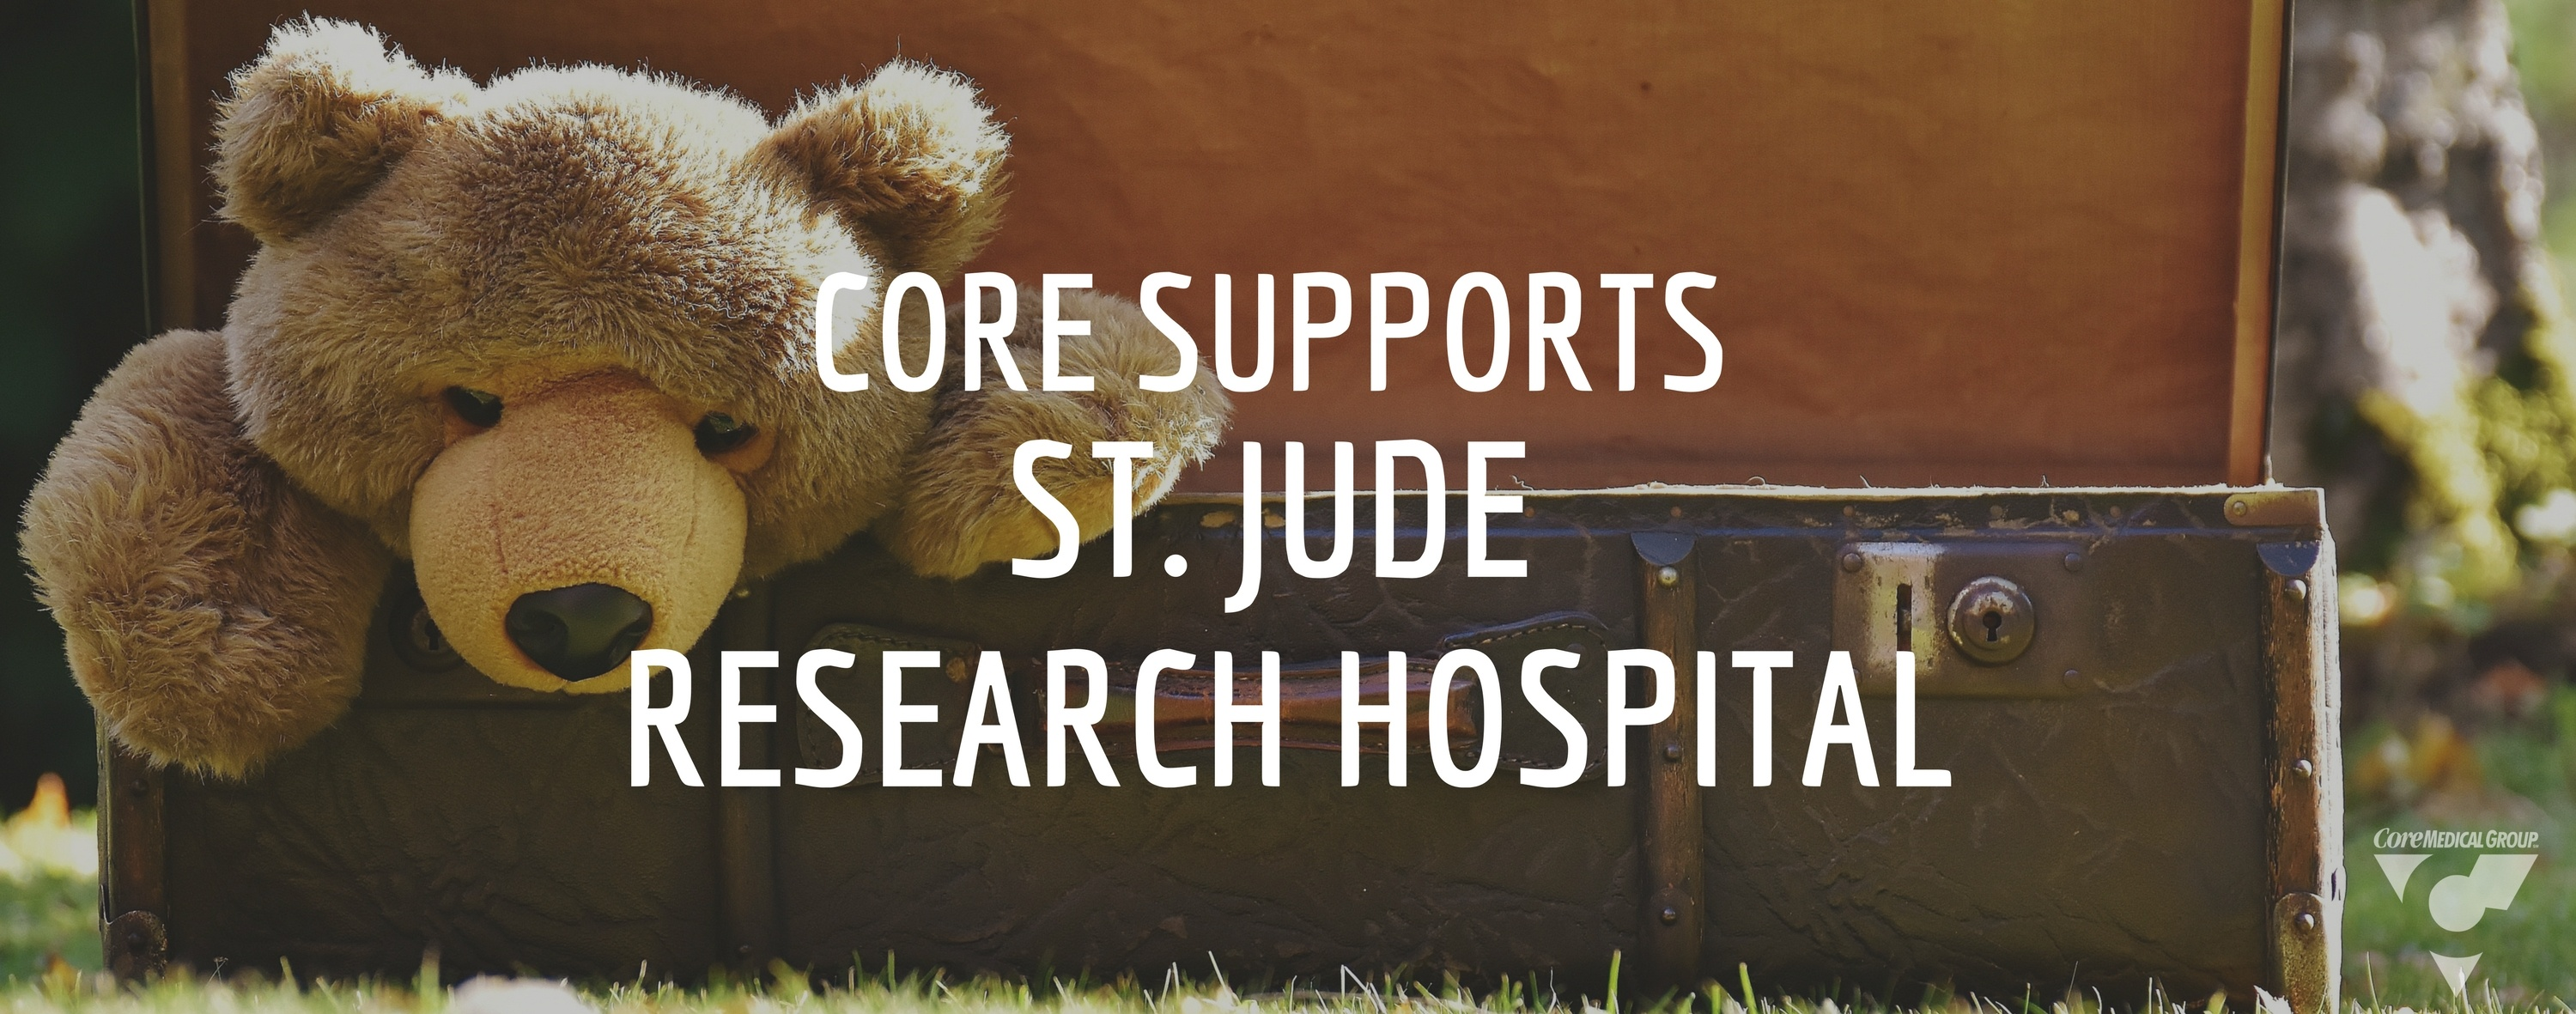 CoreMedical Group Supports St. Jude Children's Research Hospital